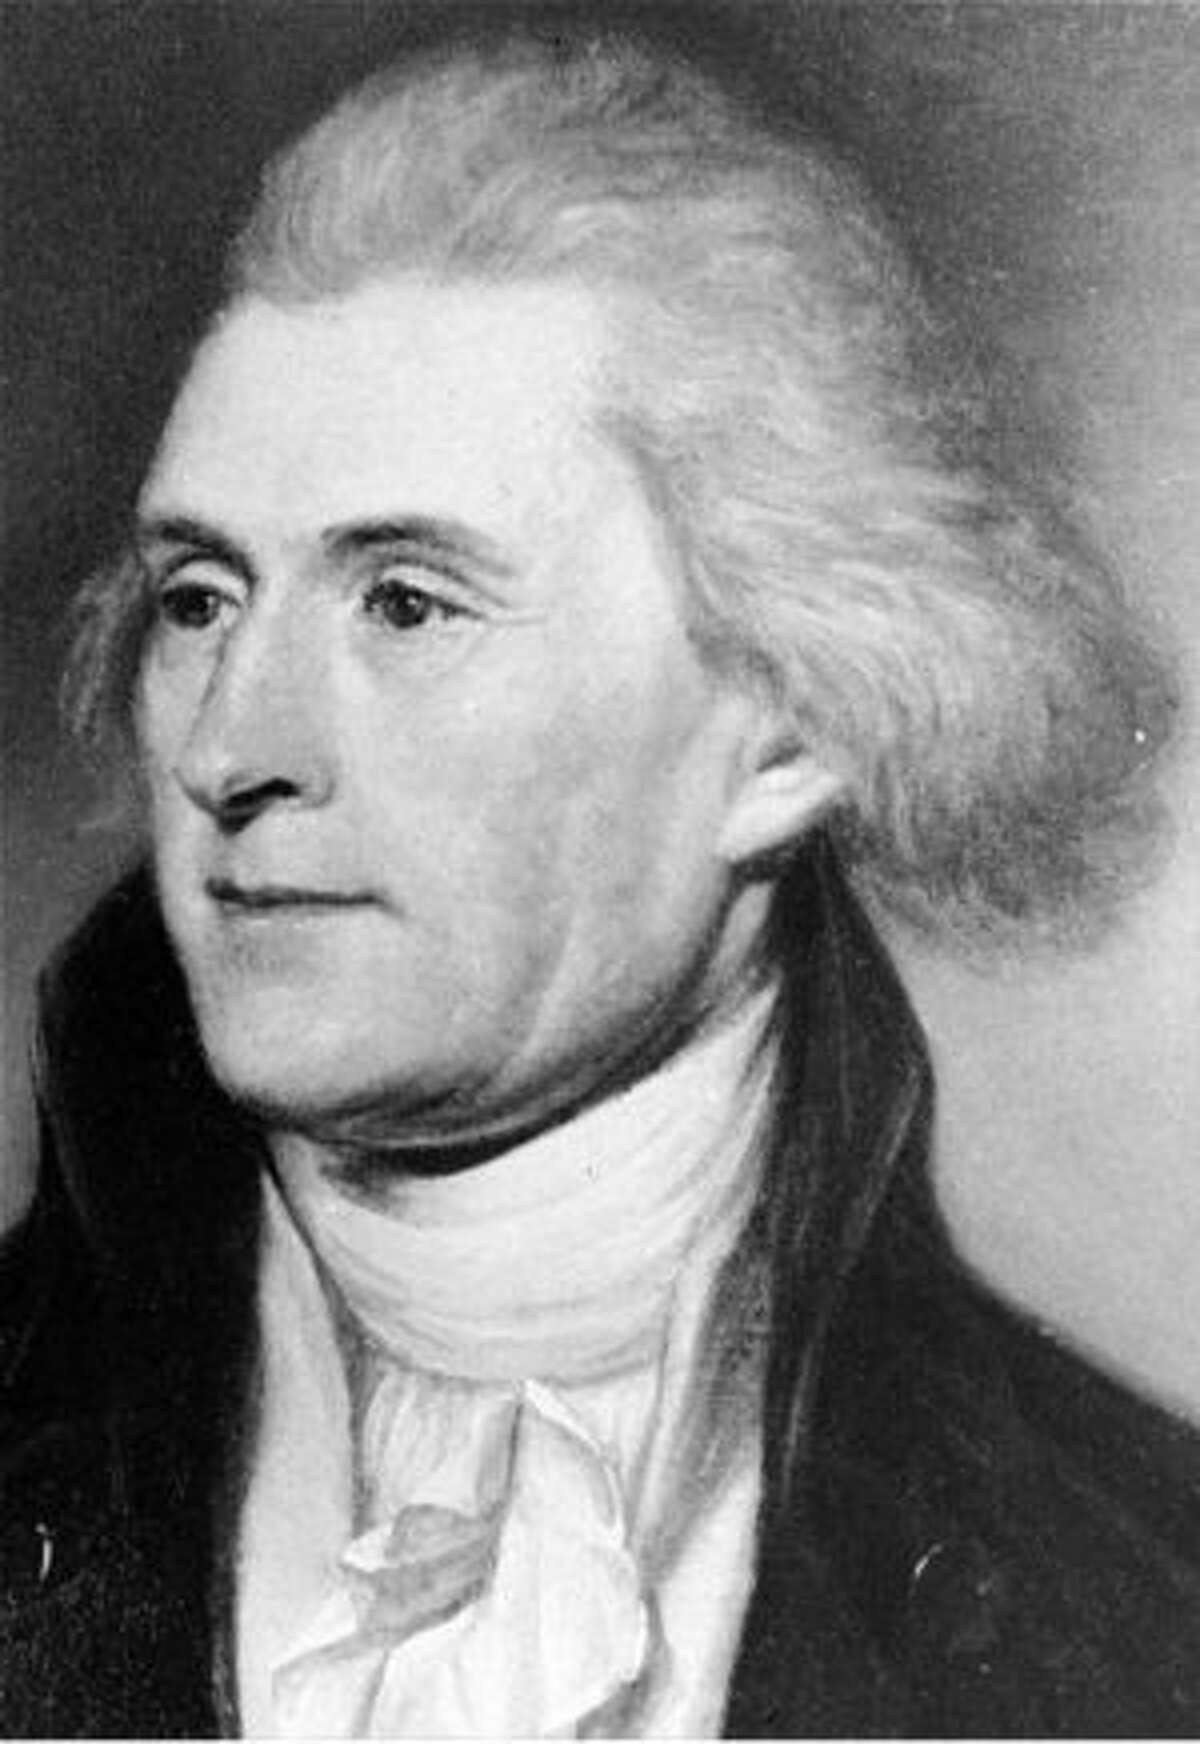 The State Board of Education dismisses Thomas Jefferson's significance.